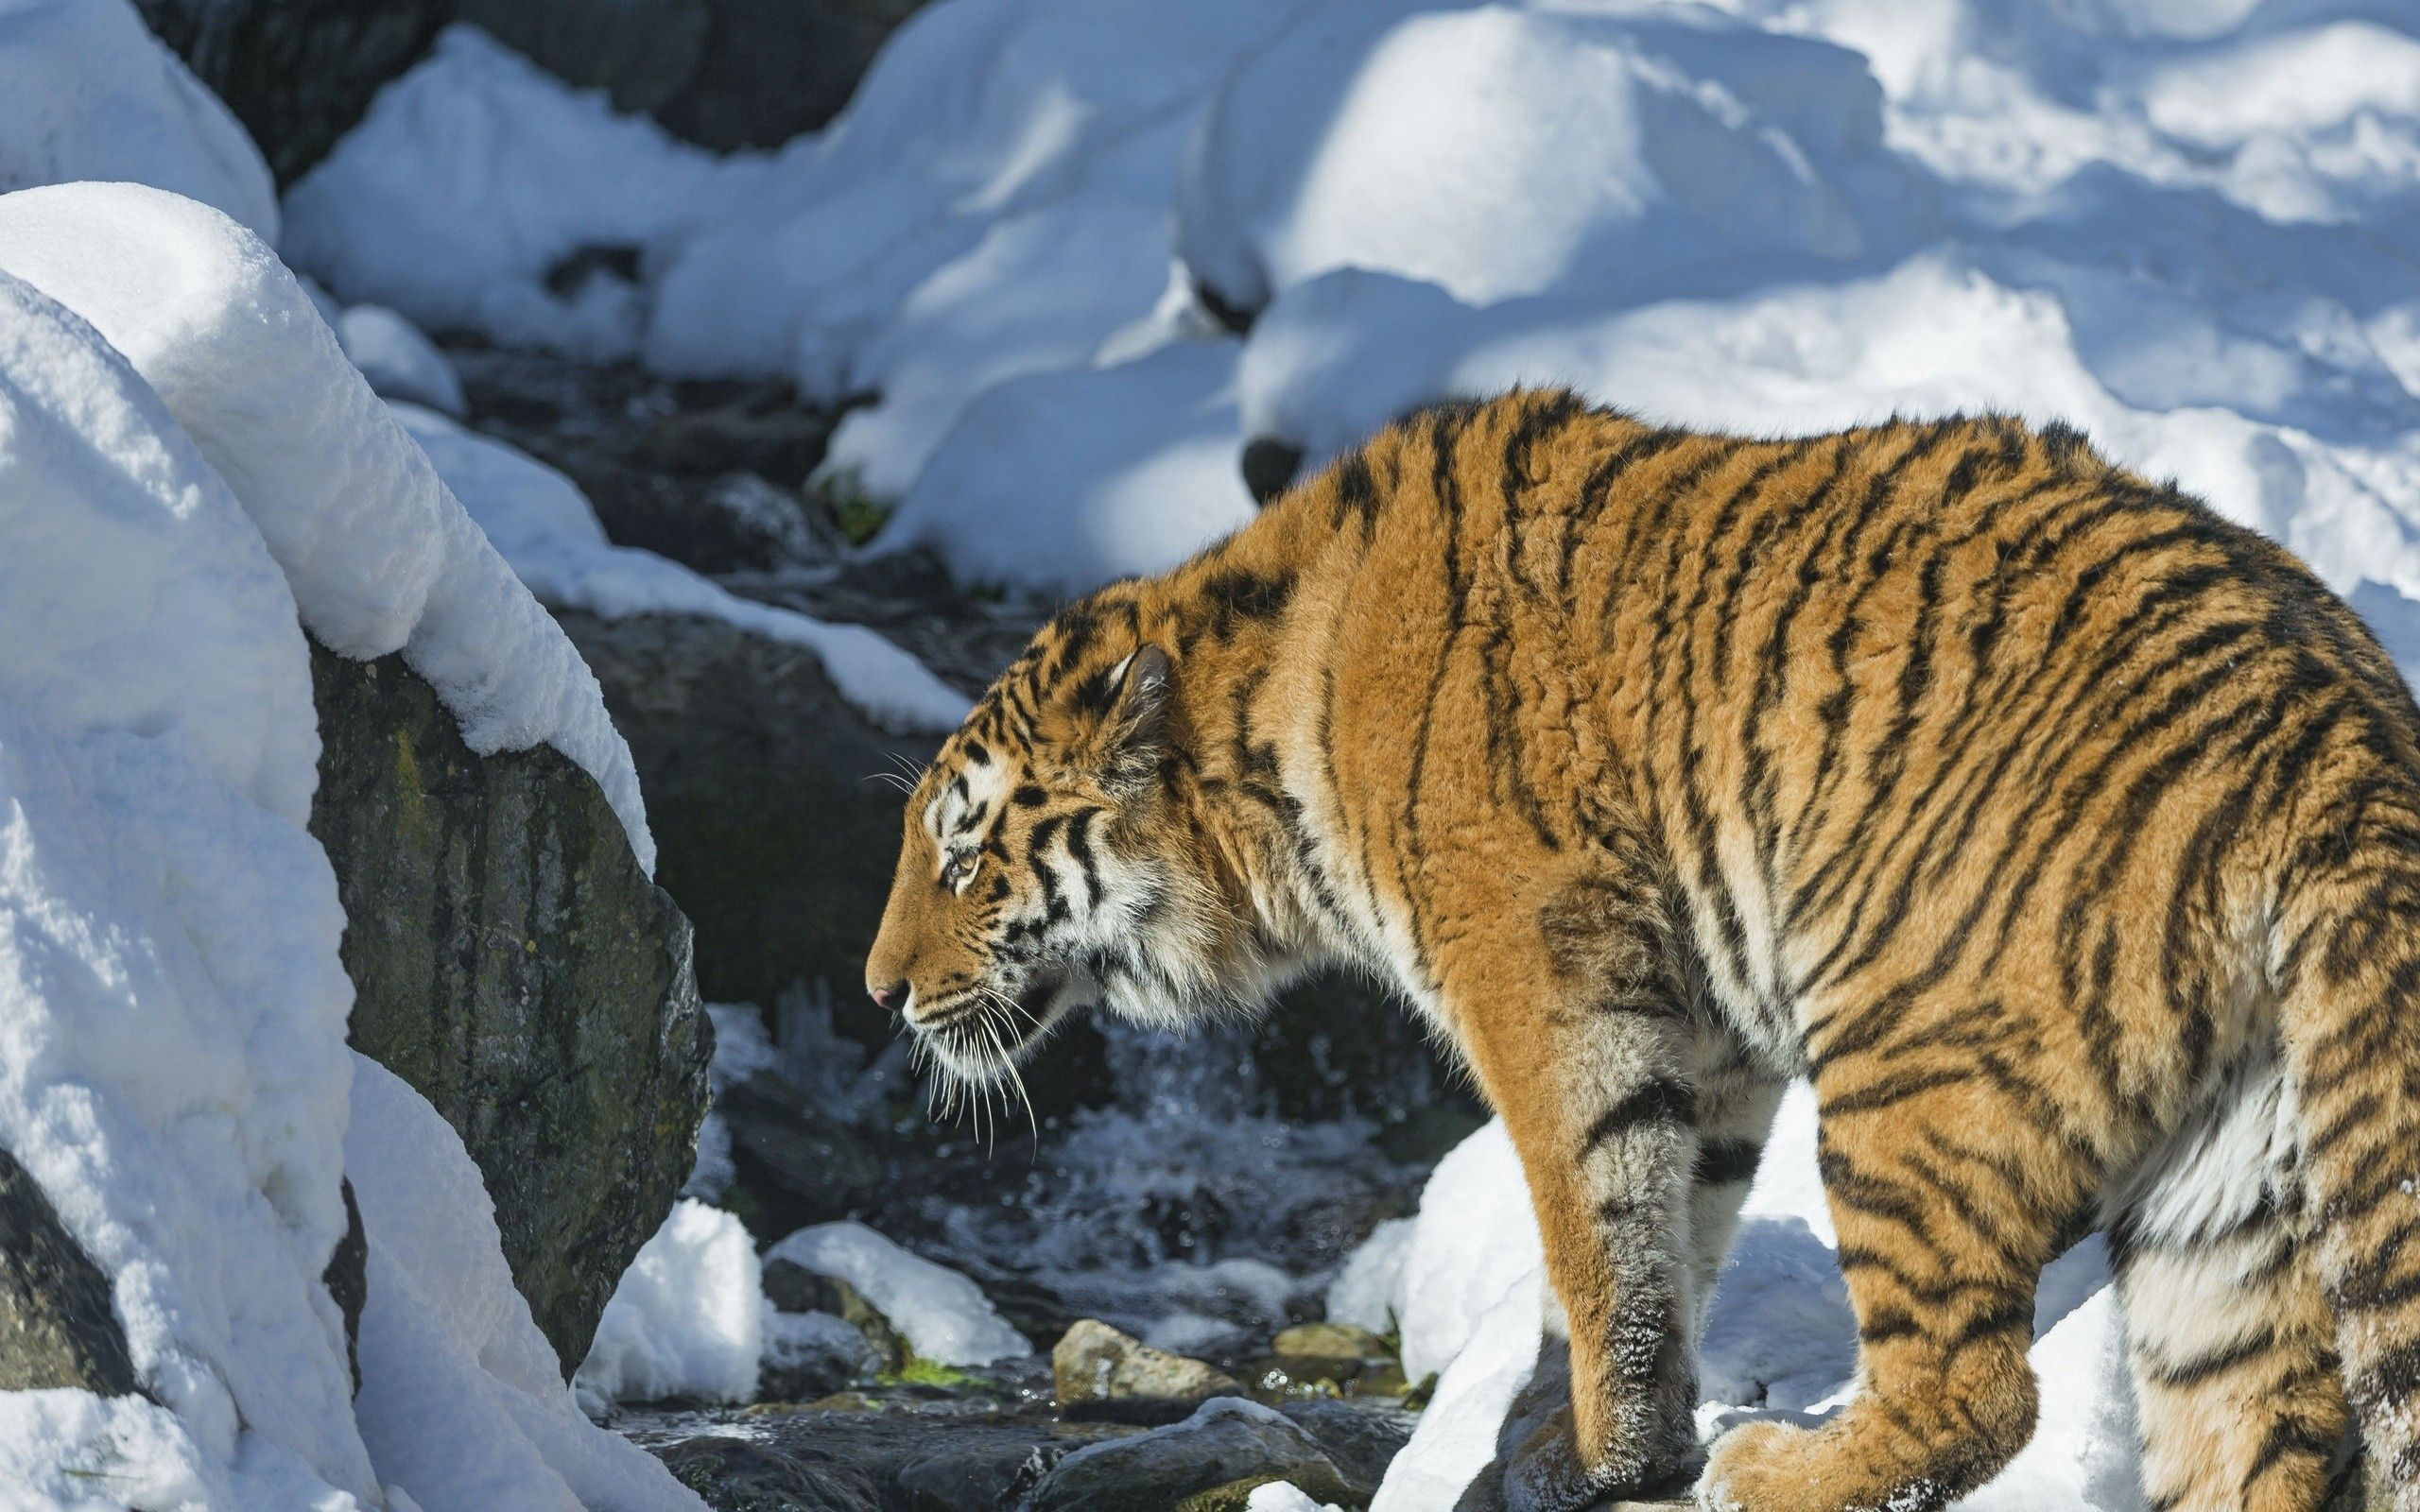 151891 download wallpaper Animals, Tiger, Snow, Predator screensavers and pictures for free